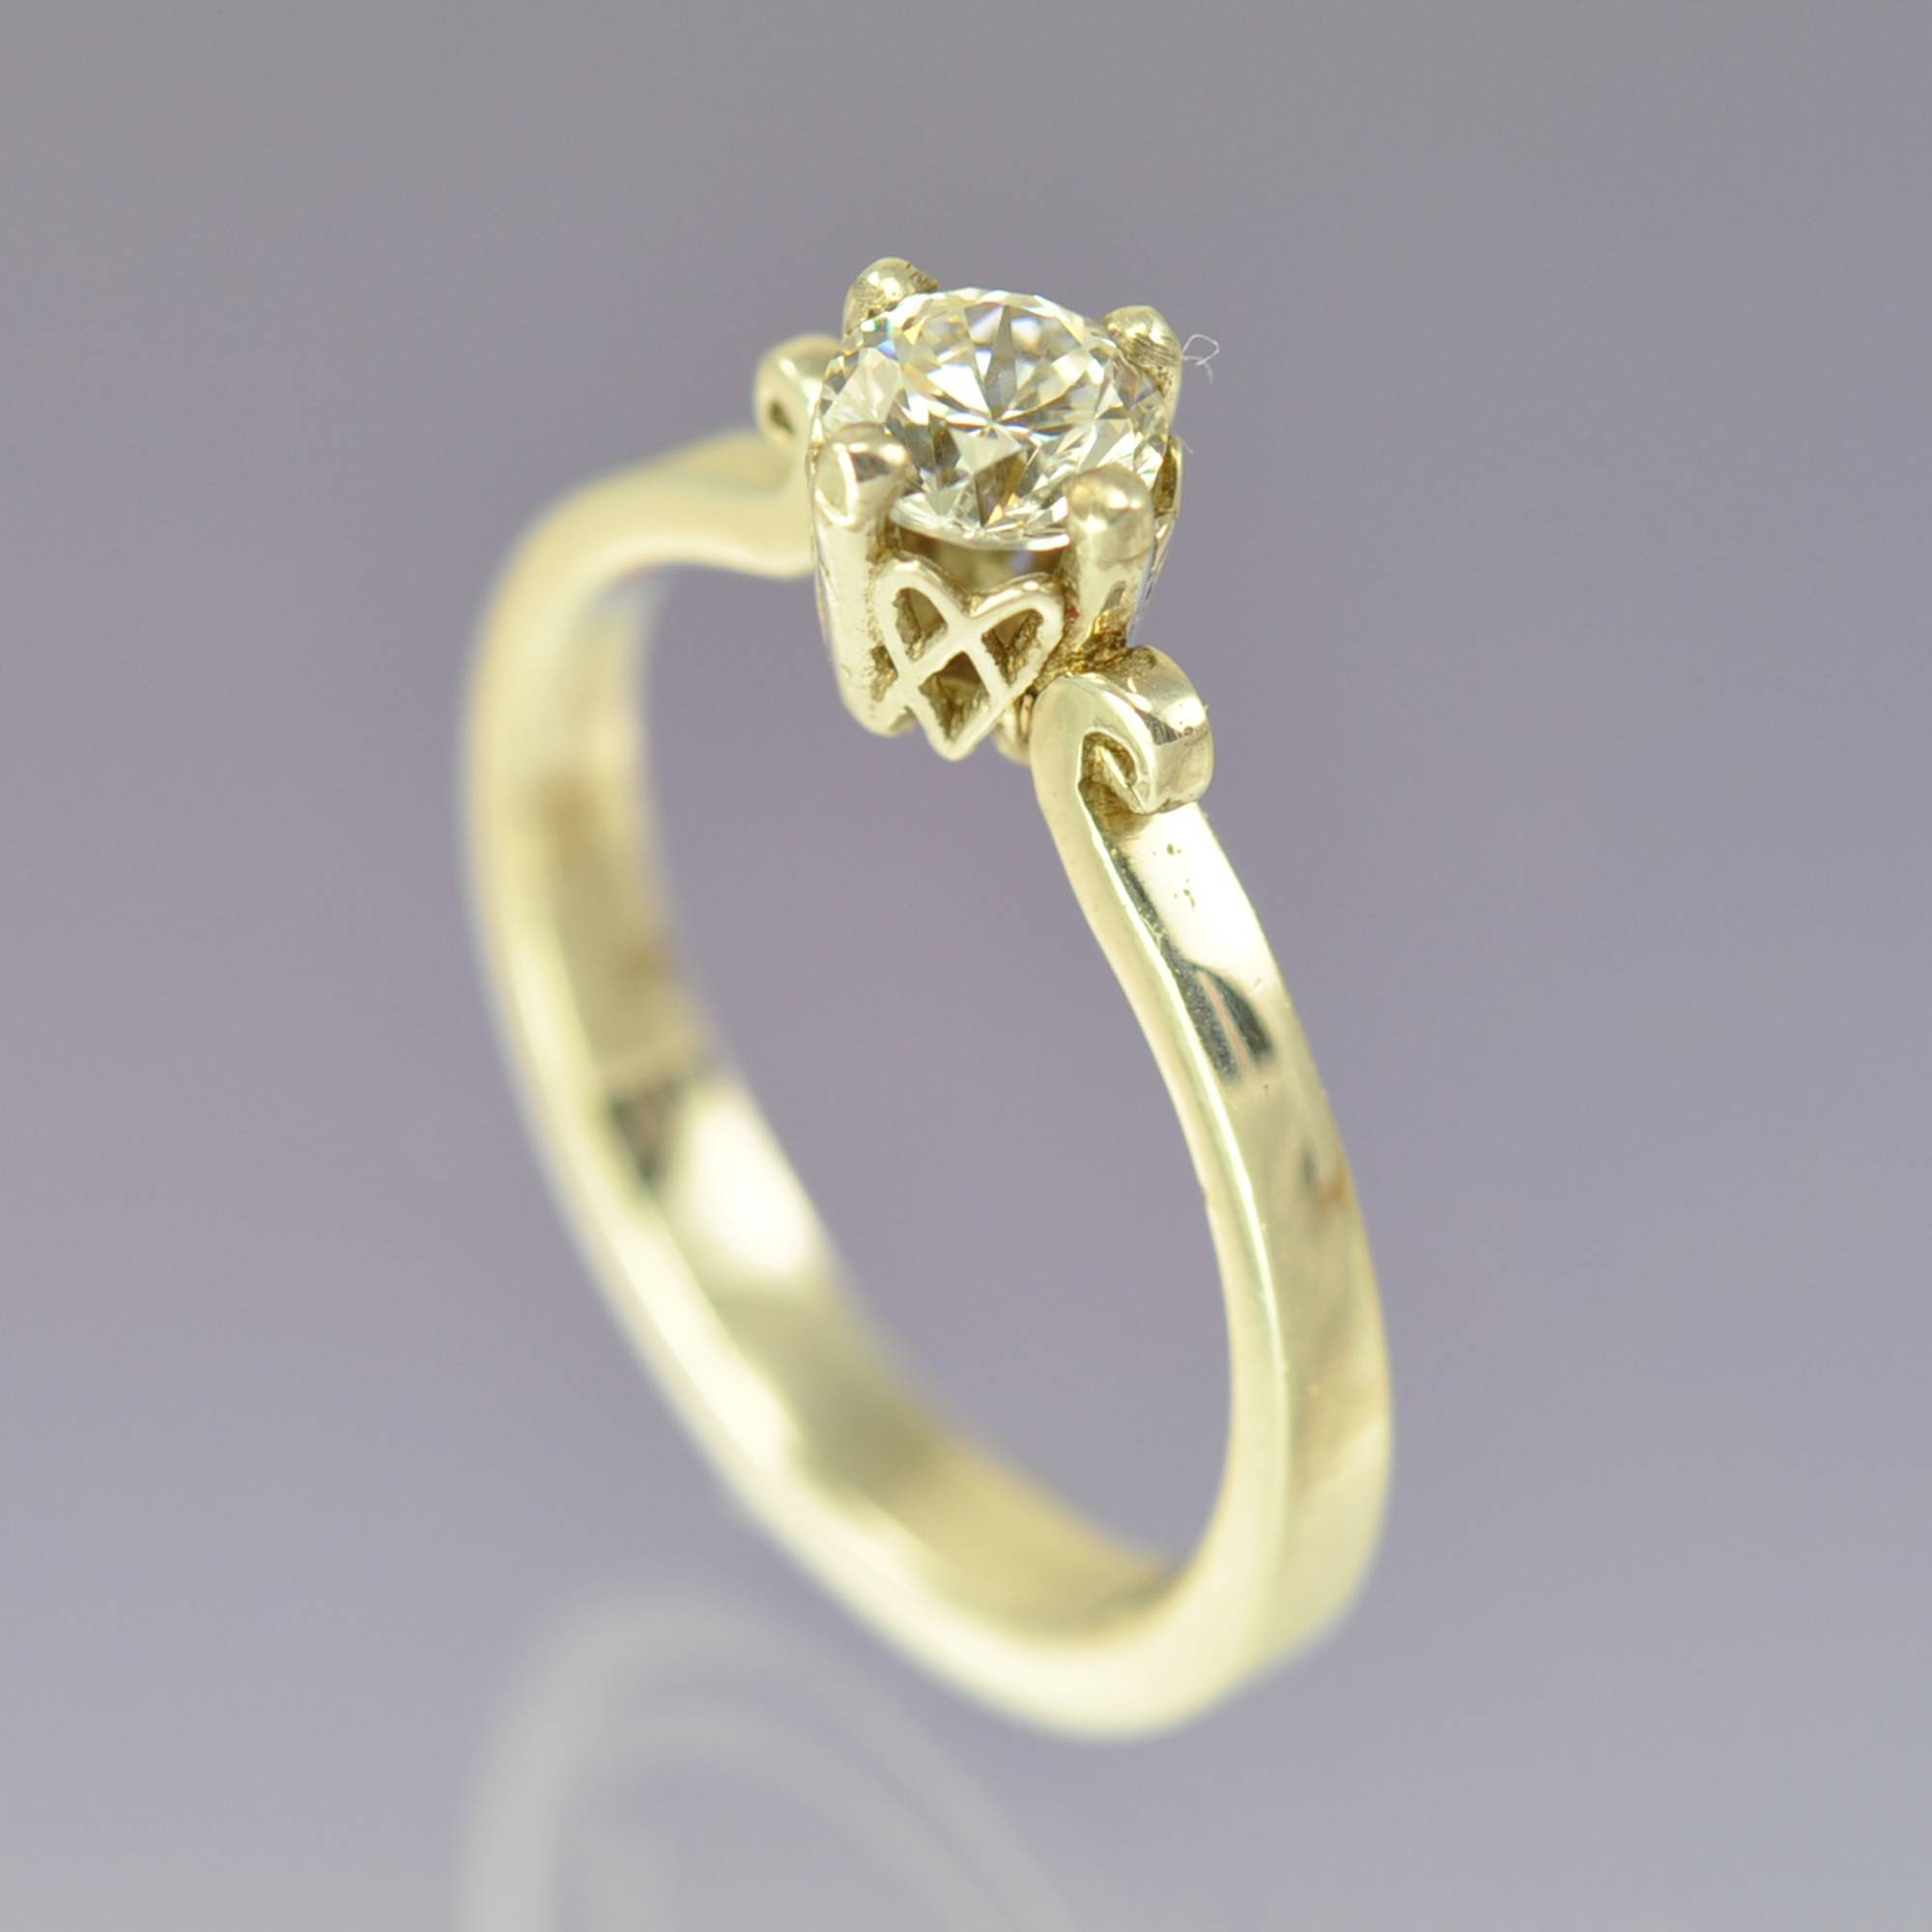 Handmade Diamond Engagement Ring – Celtic | Chris Parry – Uk Pertaining To Hand Made Engagement Rings (Gallery 9 of 15)